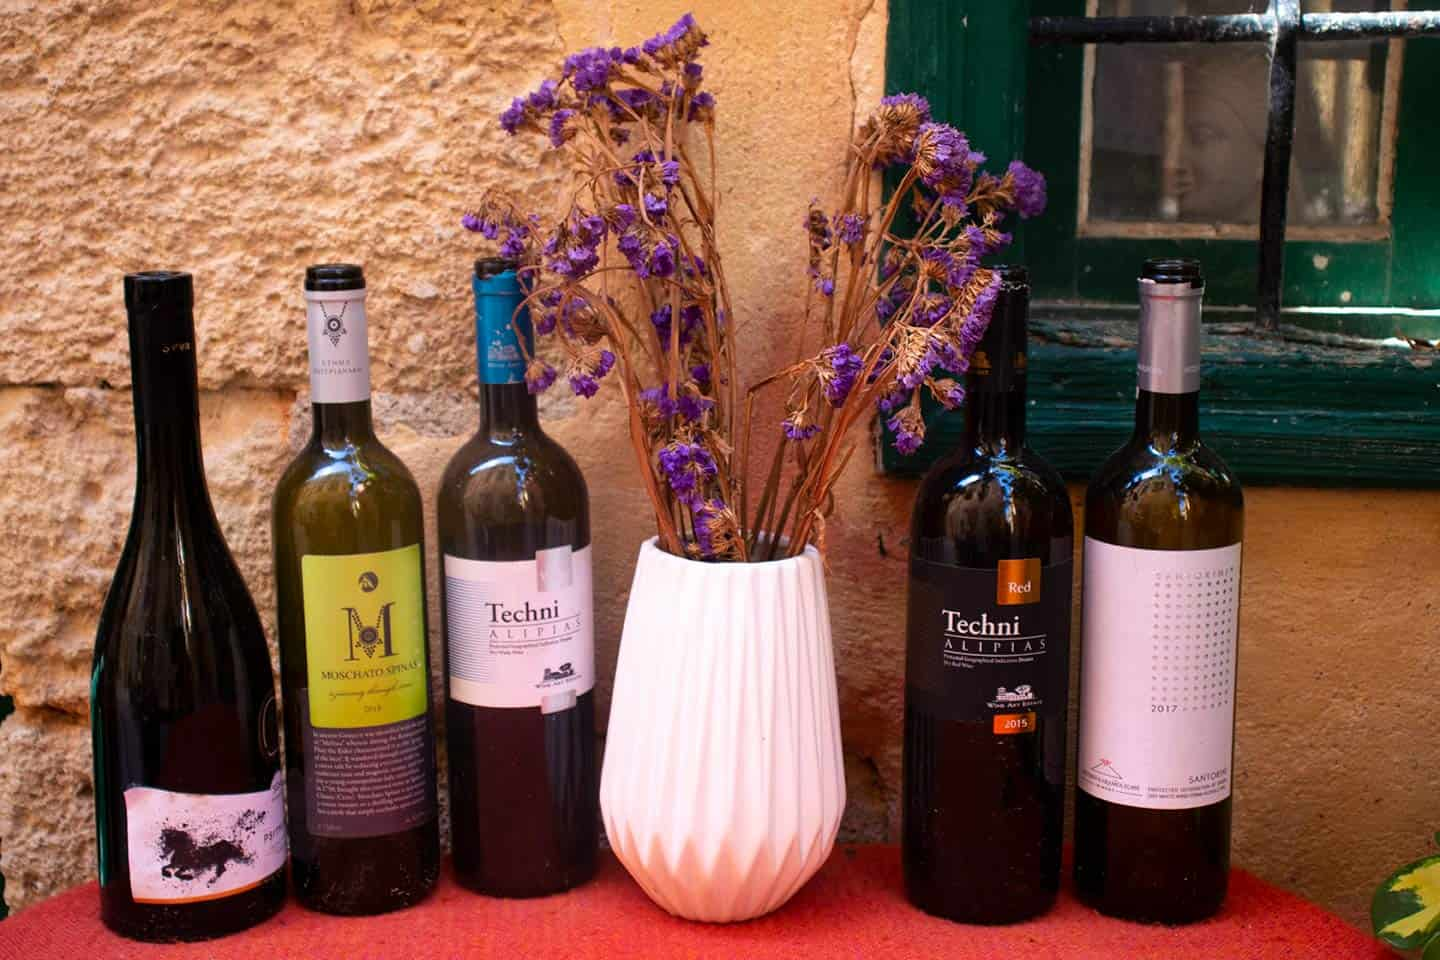 Image of wine bottles and a vase of flowers outside a restaurant in Chania Greece